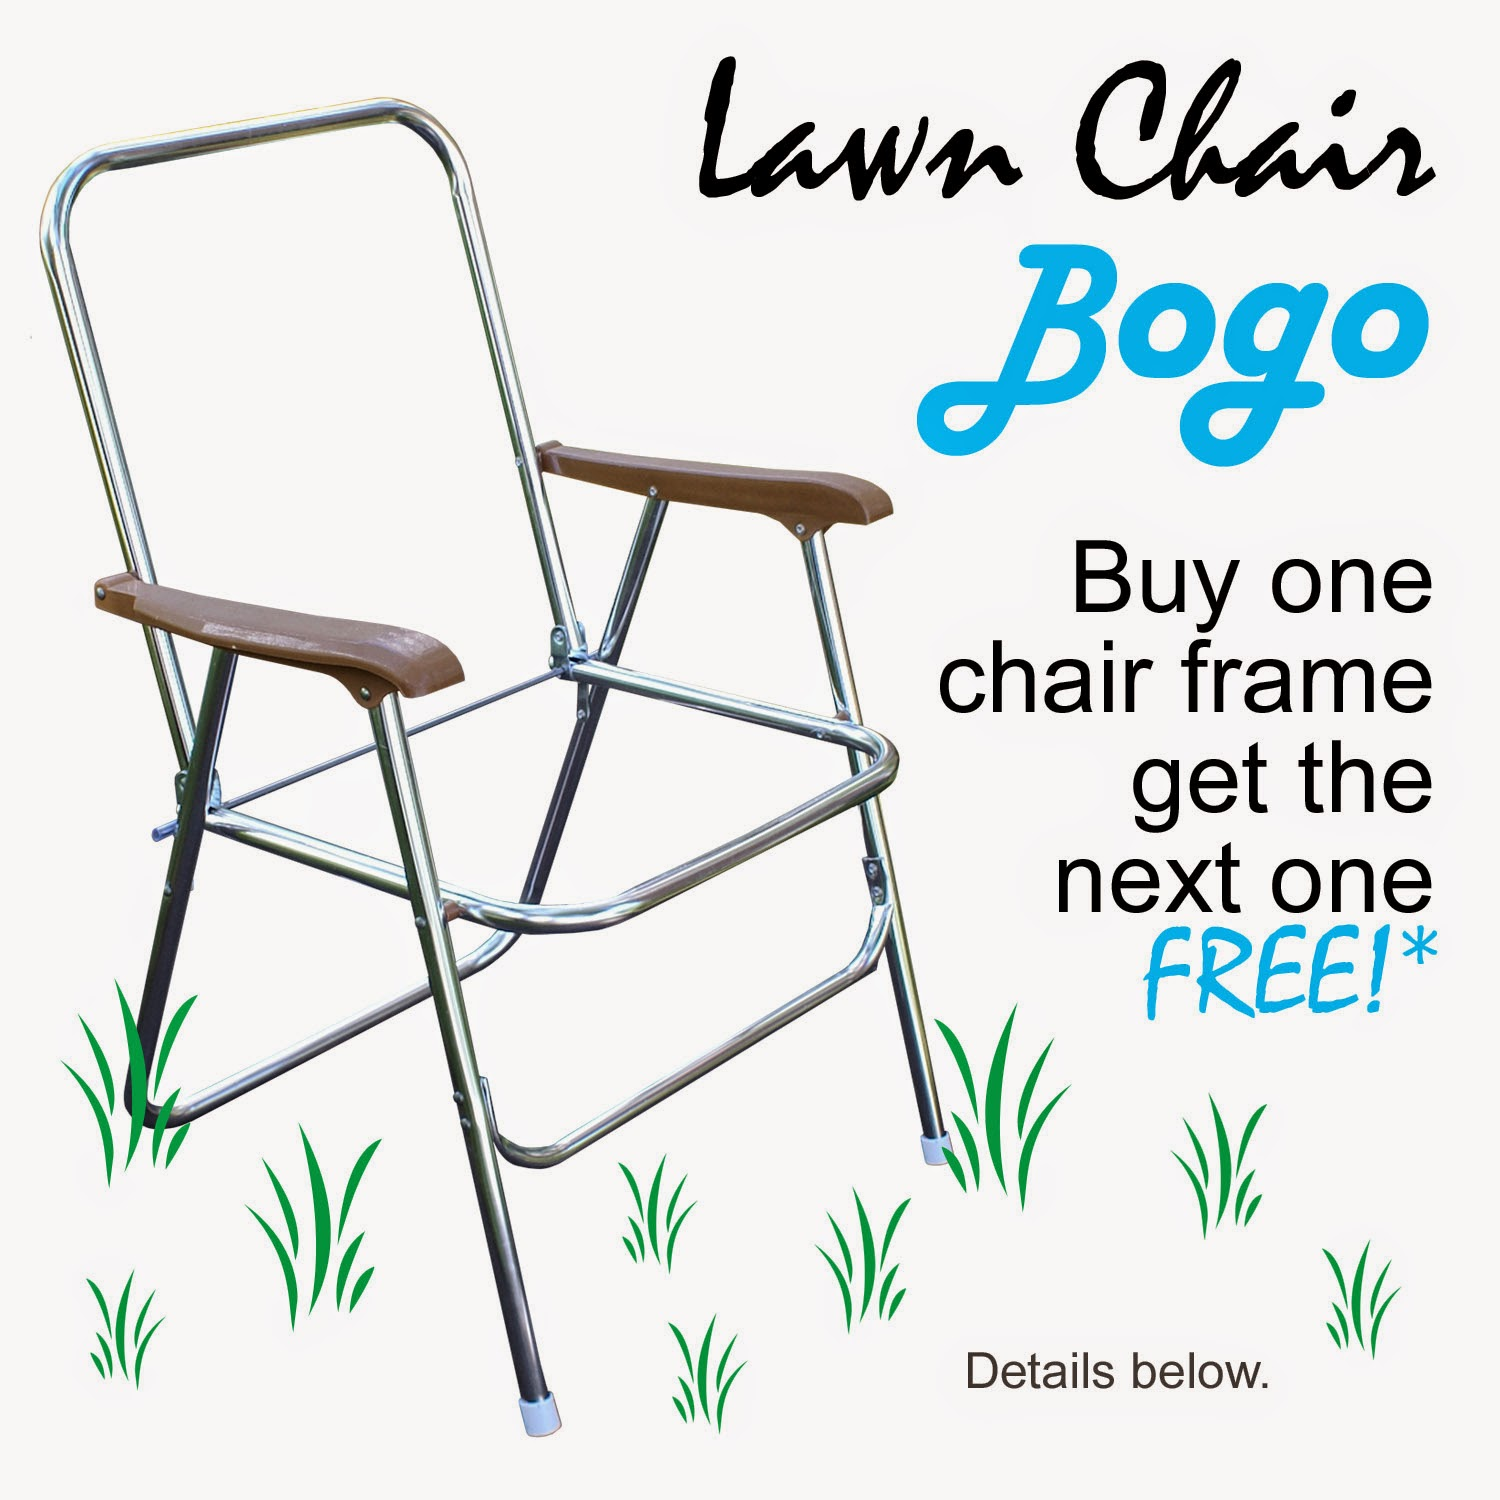 Pepperell Crafts Lawn Chair BOGO